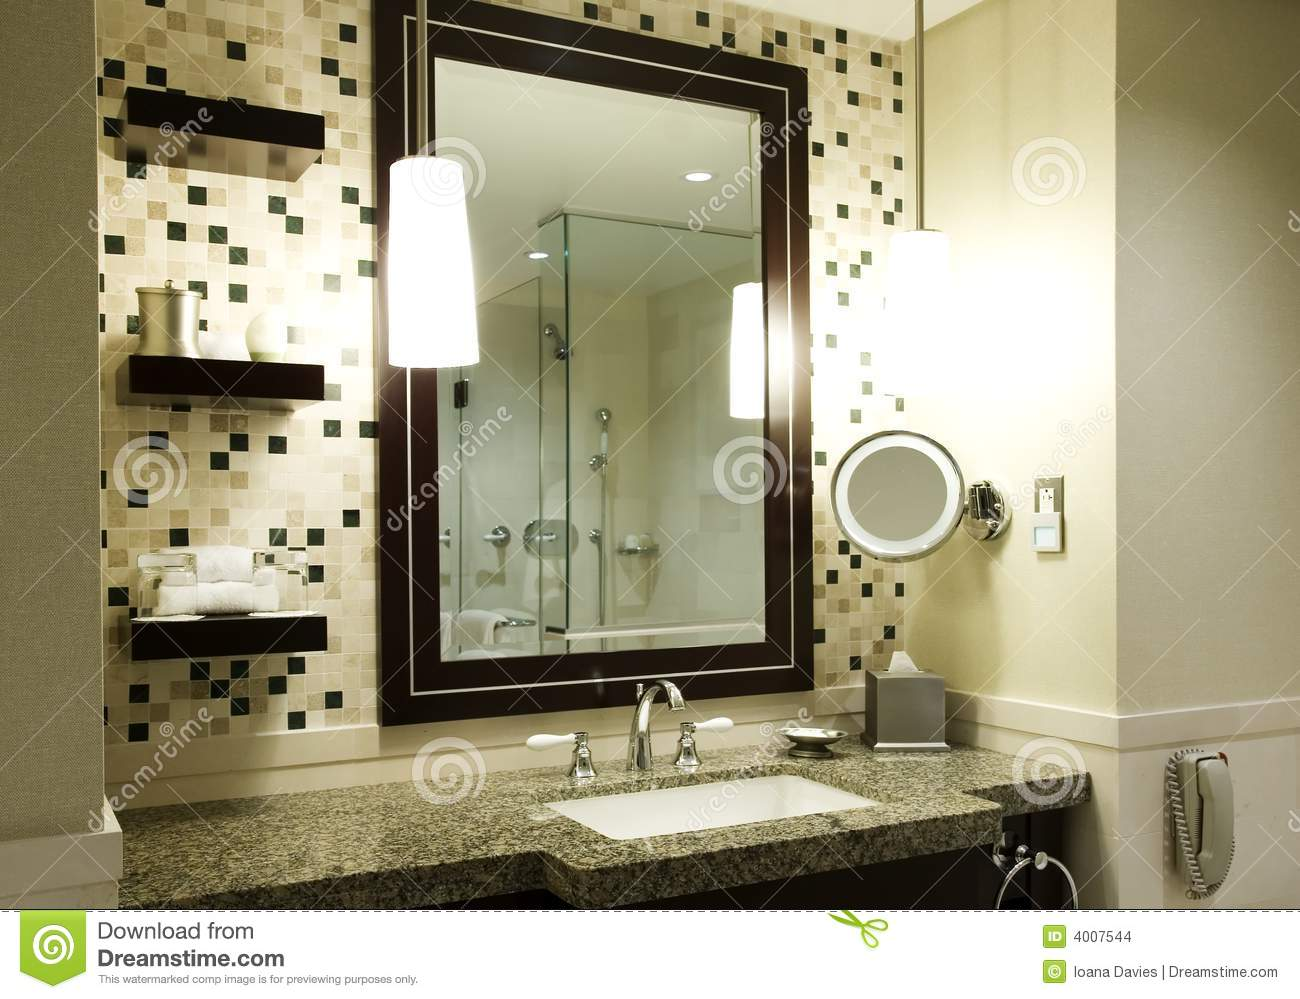 Cuarto De Baño Moderno Fotos:Bathroom Wall Tile Materials